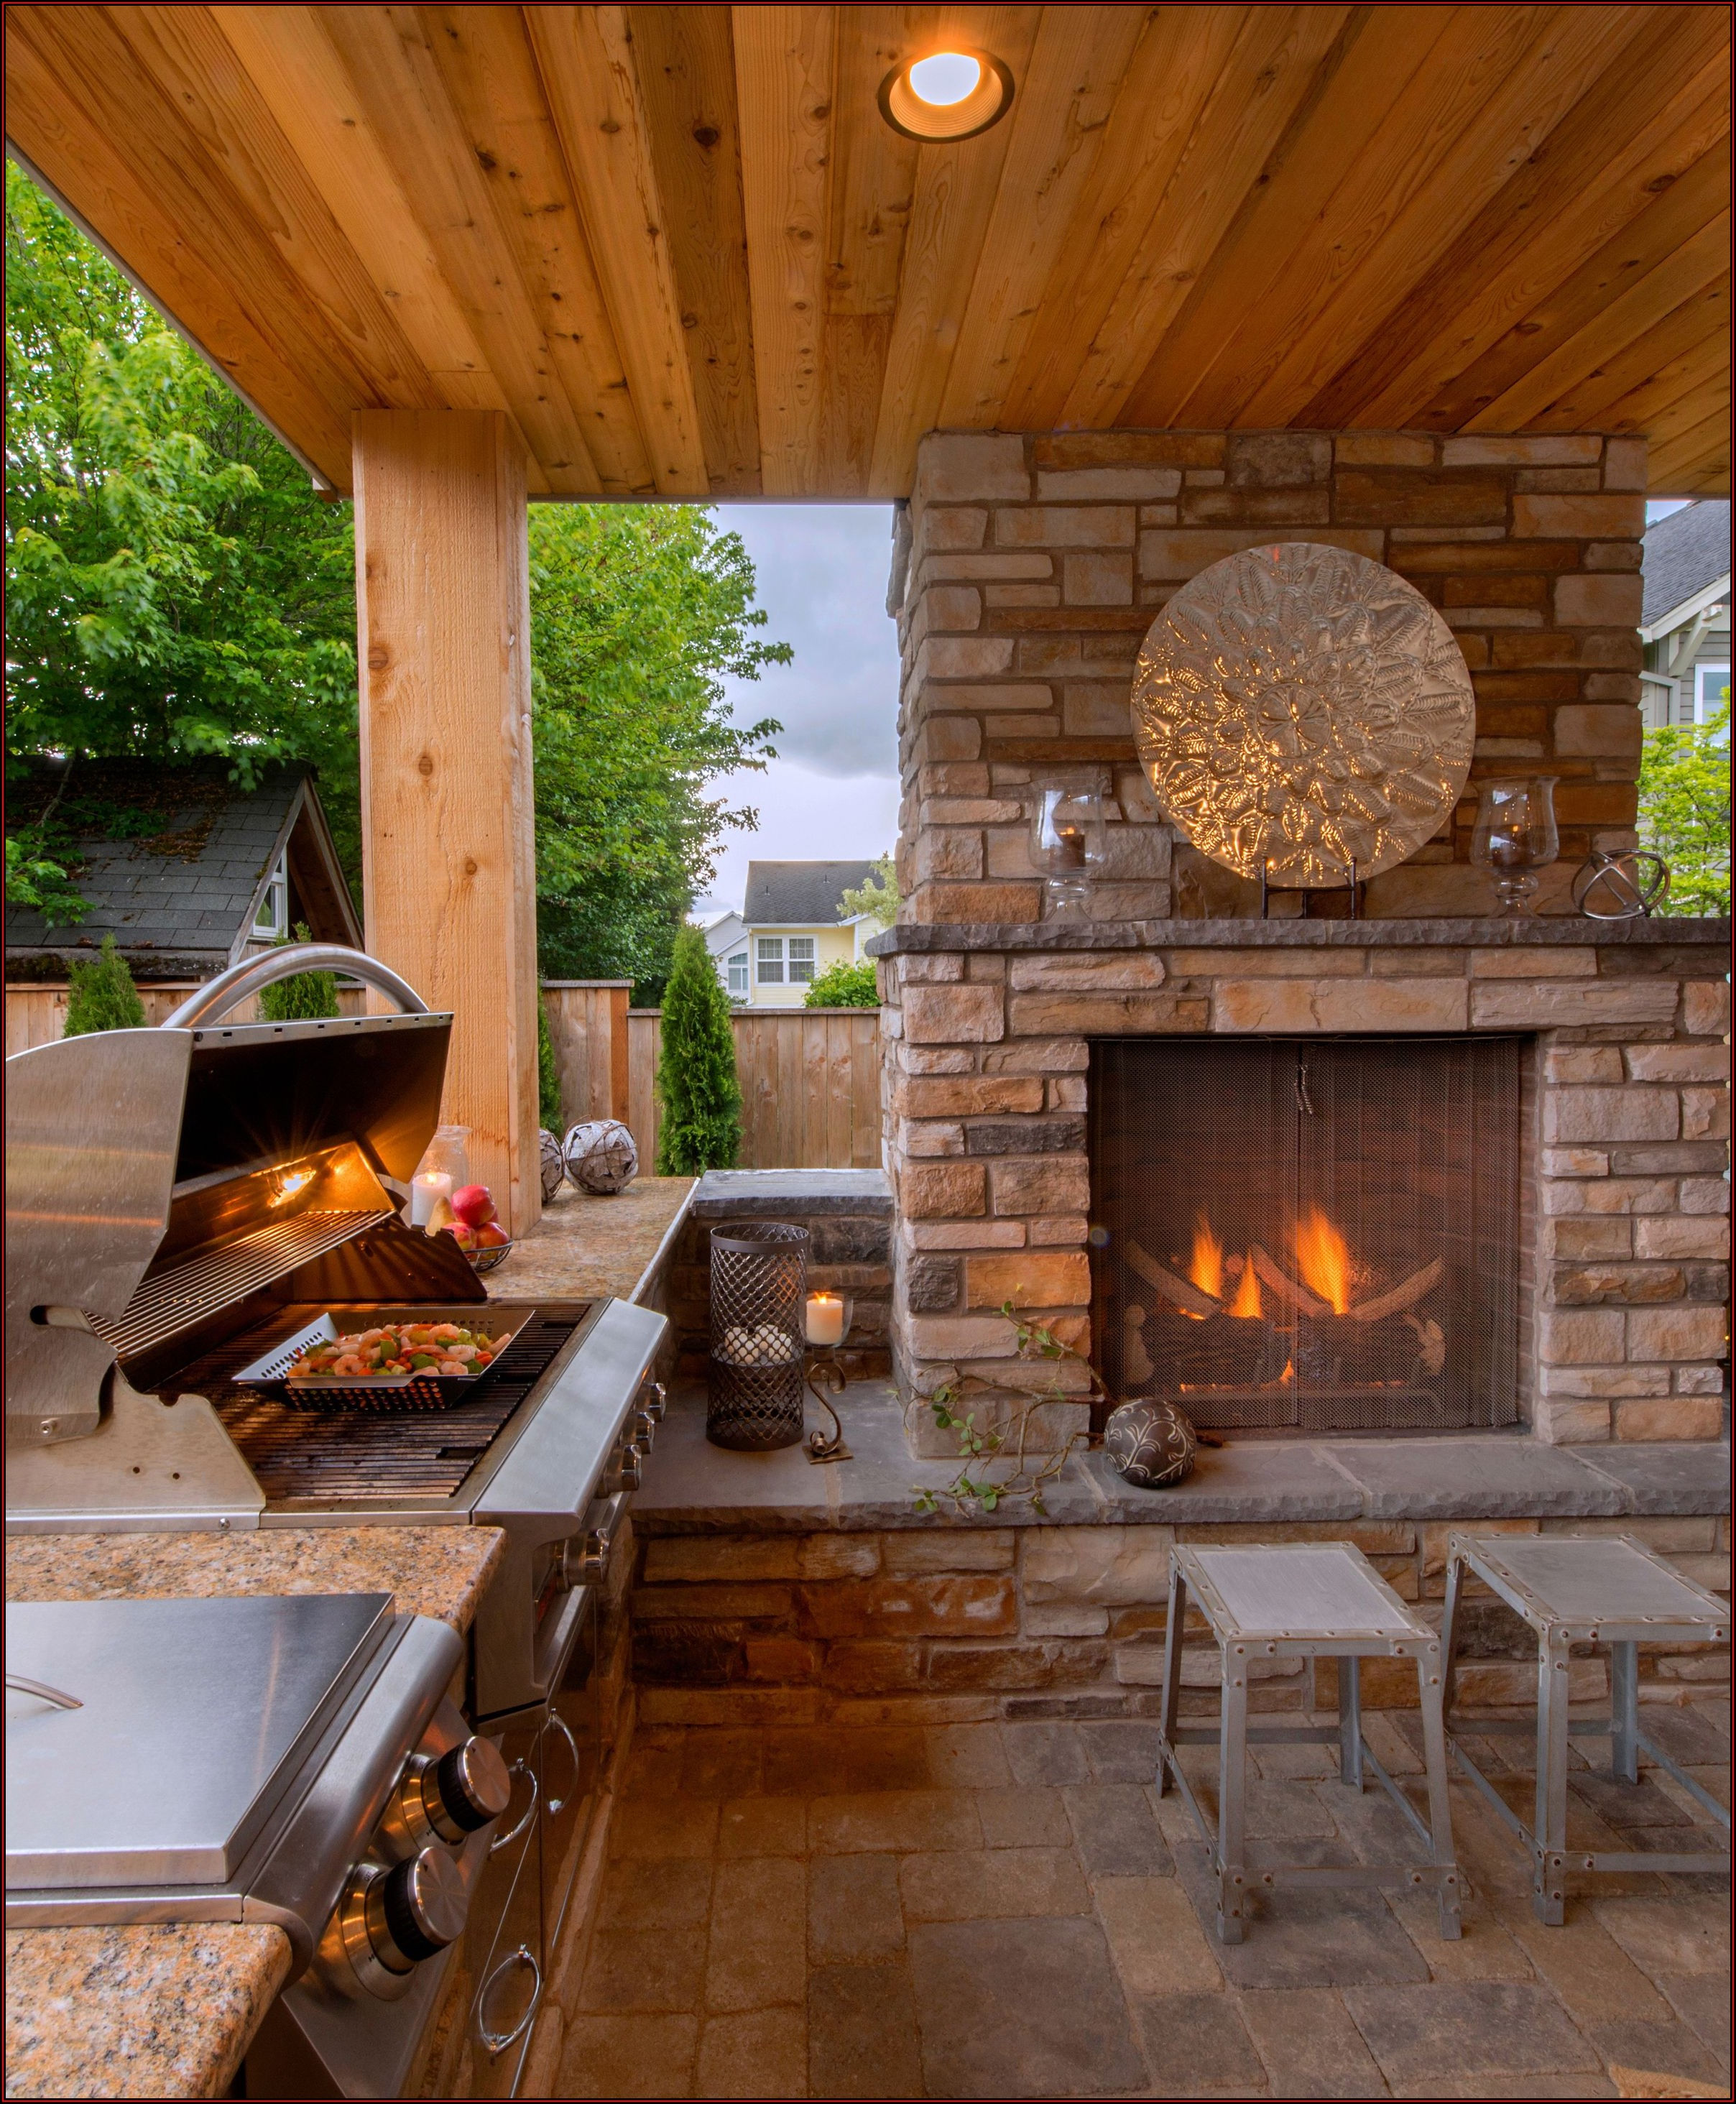 Outdoor Covered Patio With Fireplace And Kitchen